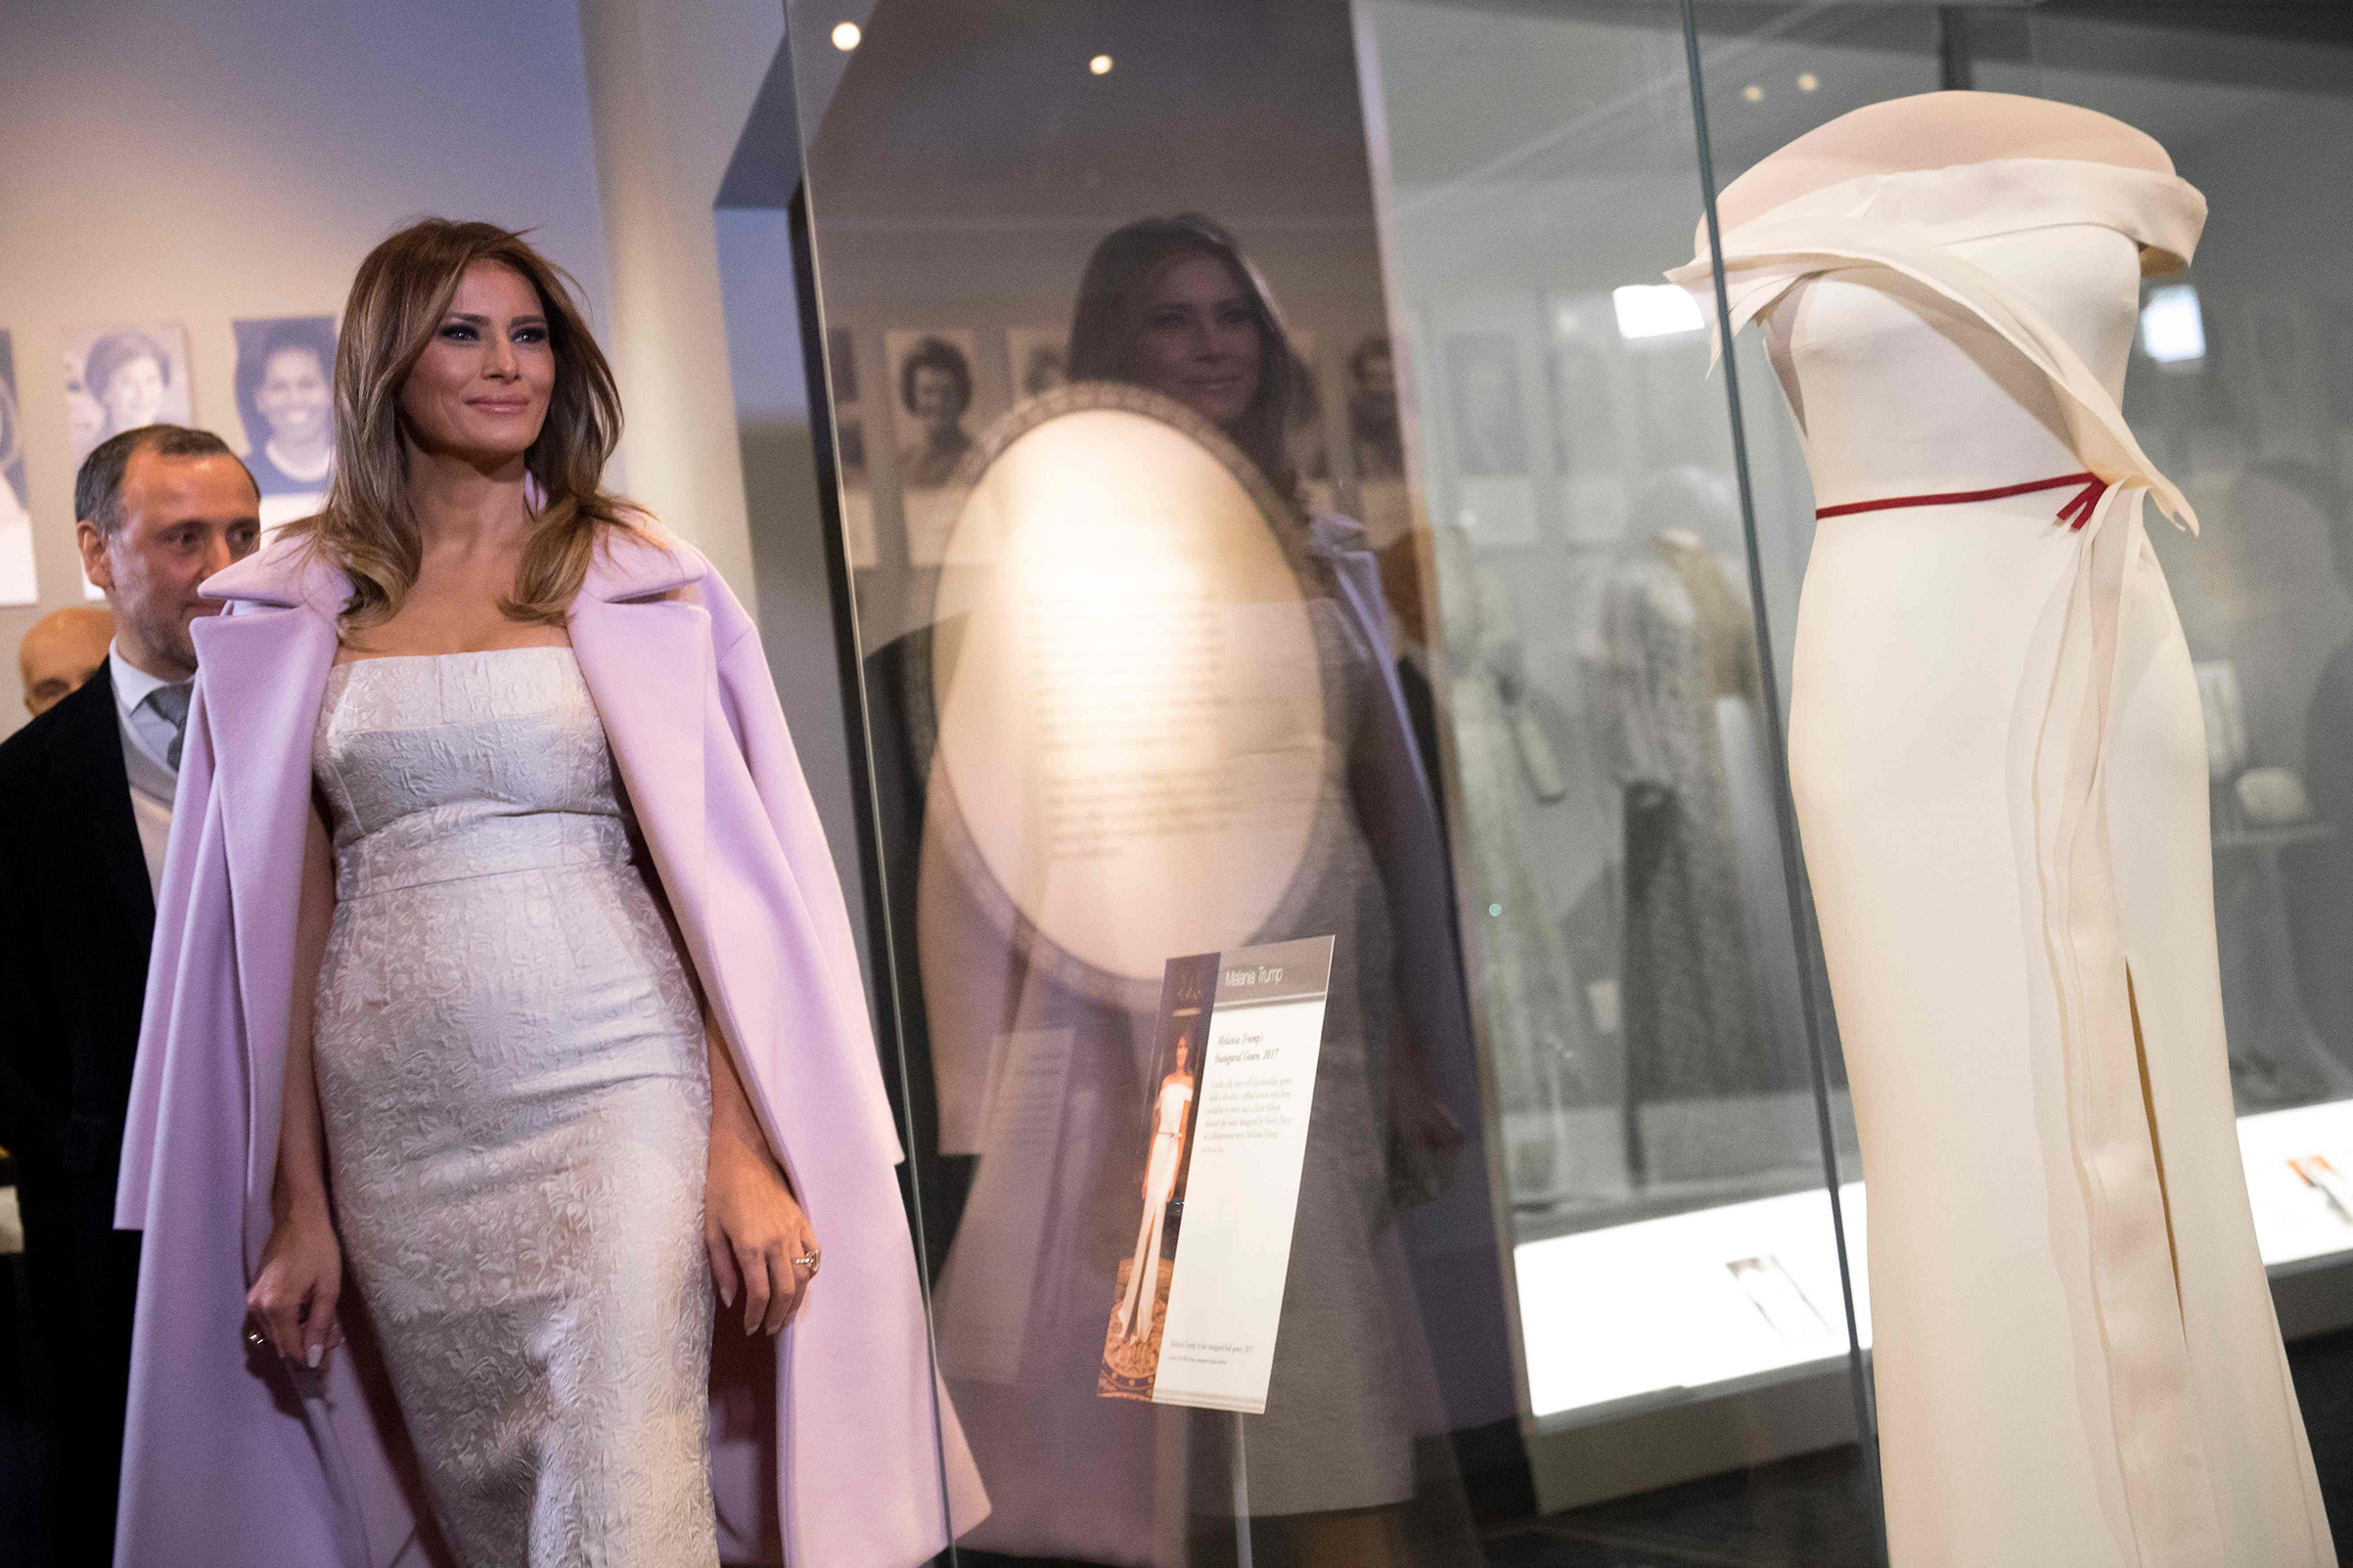 First lady Melania Trump wearing an ivory Dolce & Gabbana dress stands next to Hervé Pierre and his gown, she wore to the 2017 inaugural balls as she donates the dress to the Smithsonian's First Ladies Collection at the Smithsonian National Museum of American History in Washington, D.C., Oct. 20, 2017.